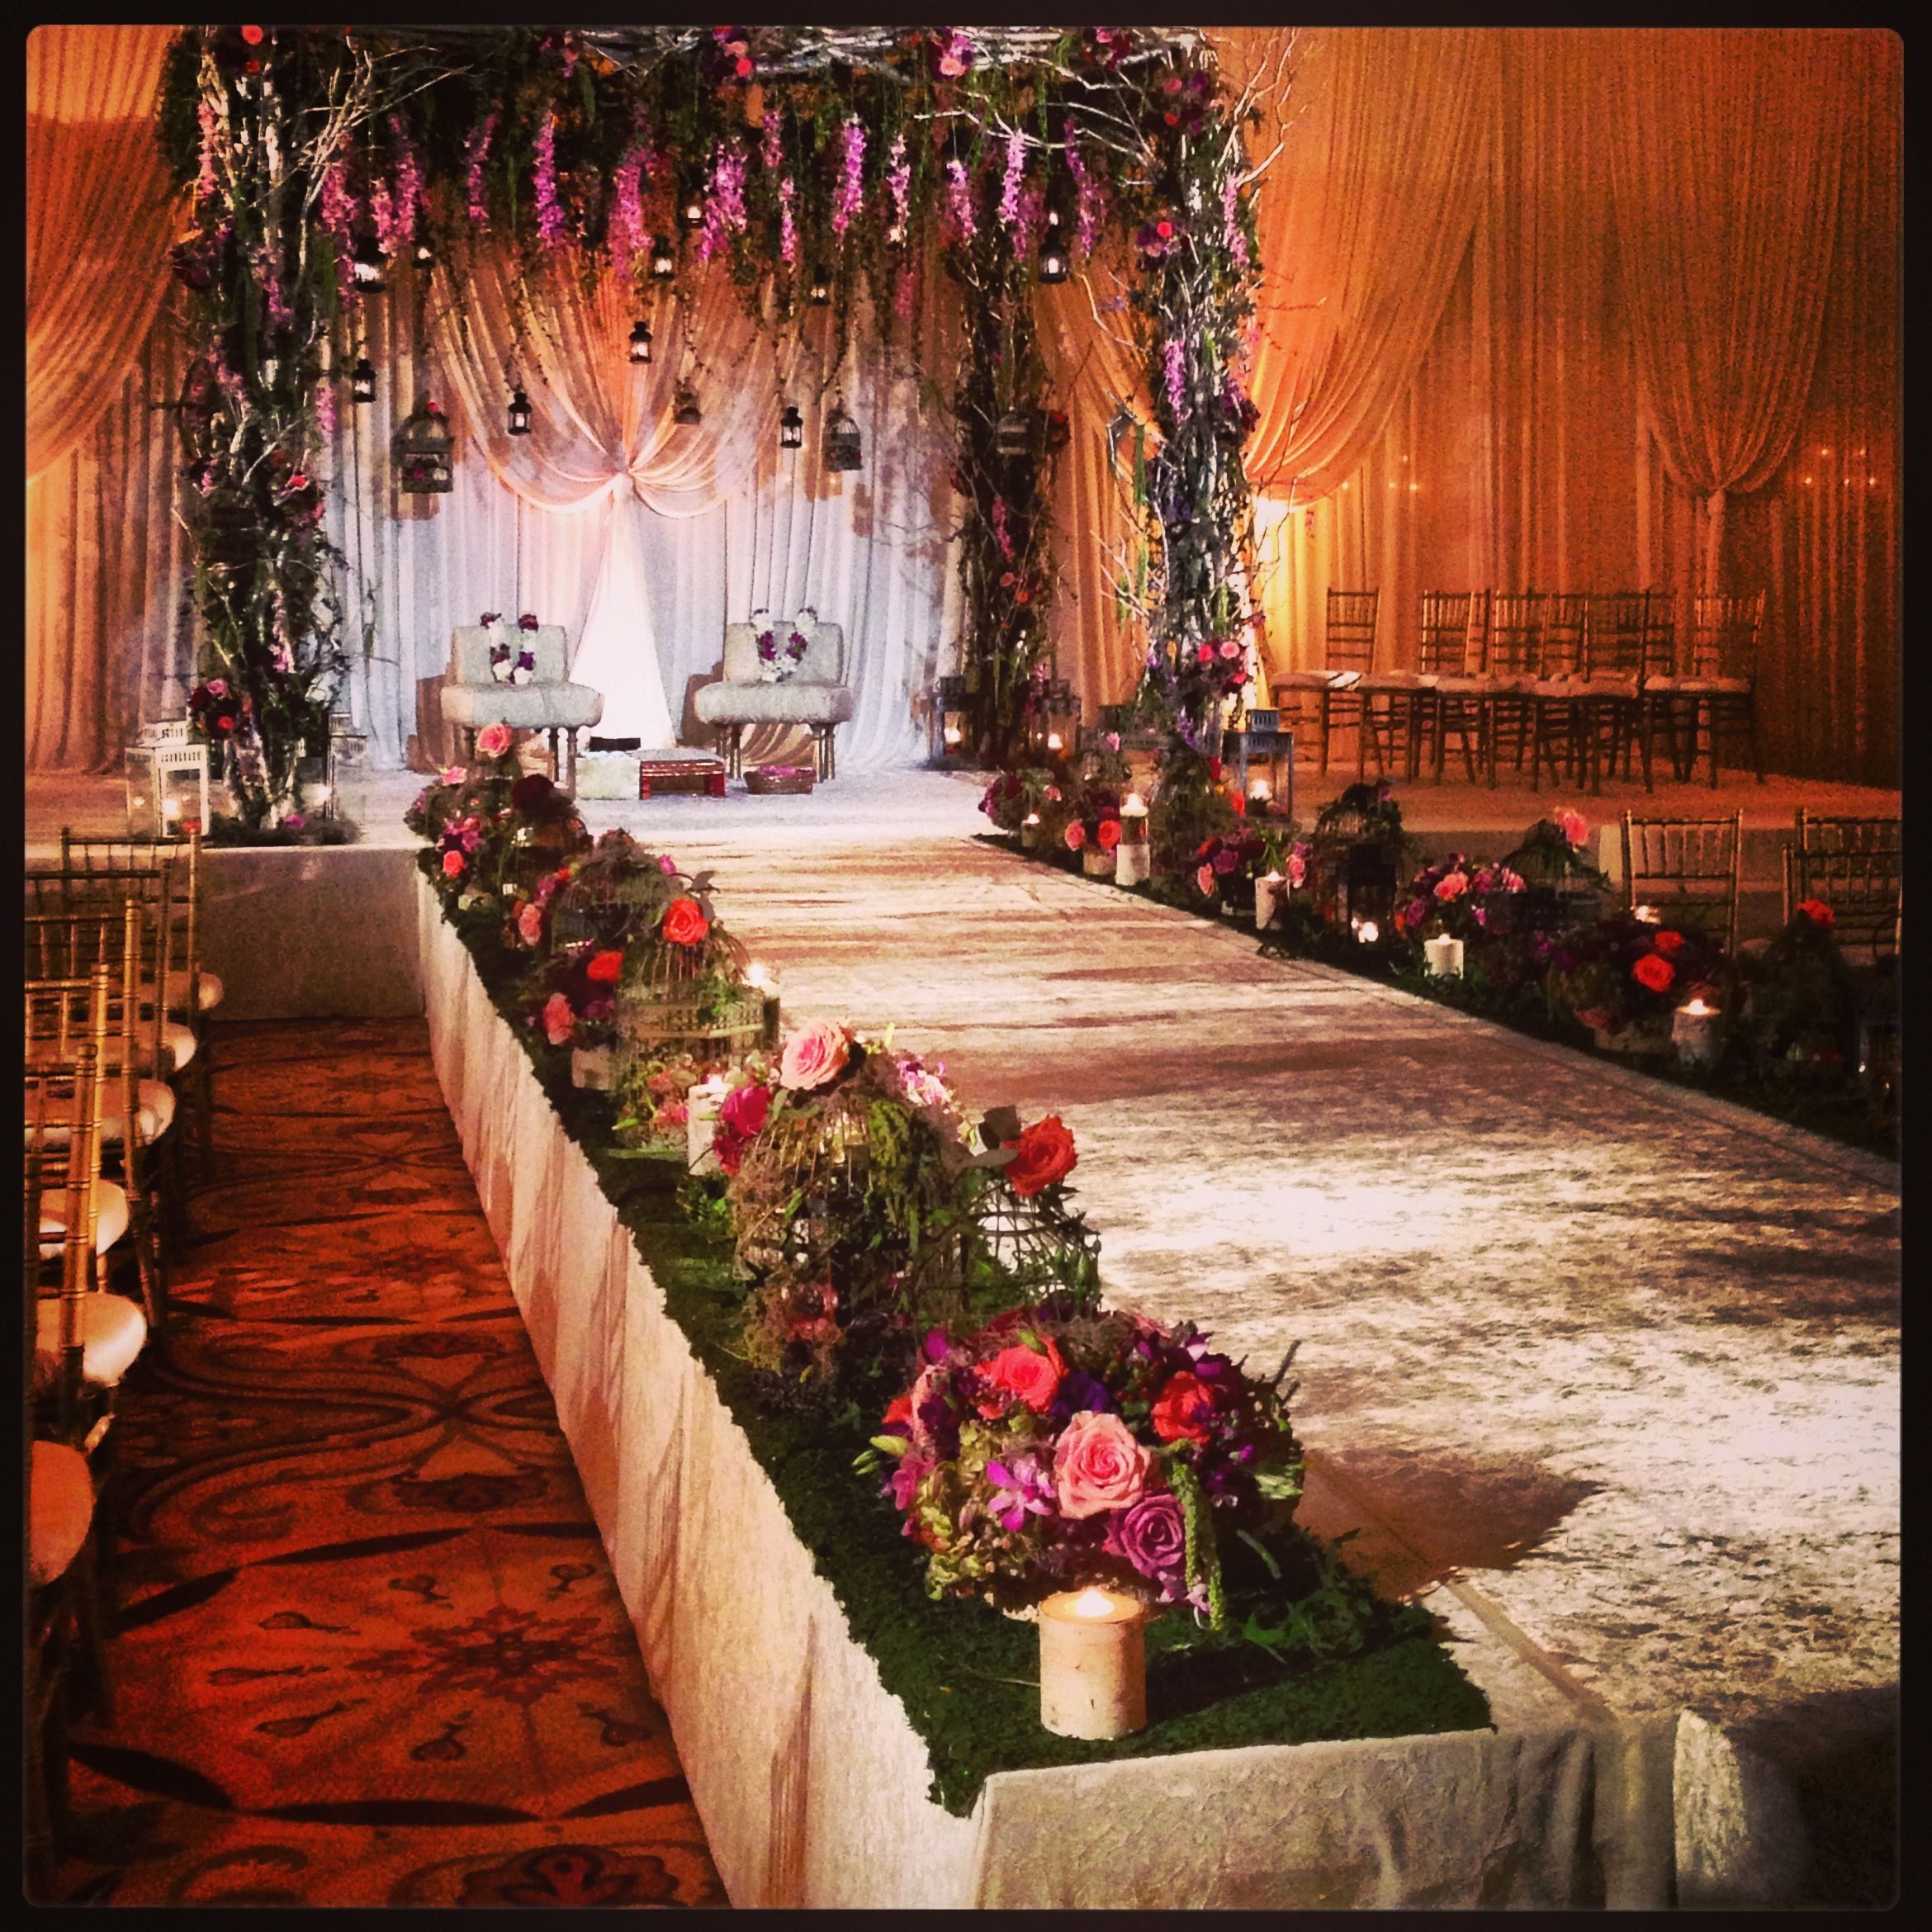 Celebrity Wedding Reception Decor: Spring Enchanted Forest Colors: Purple, Green, A Little